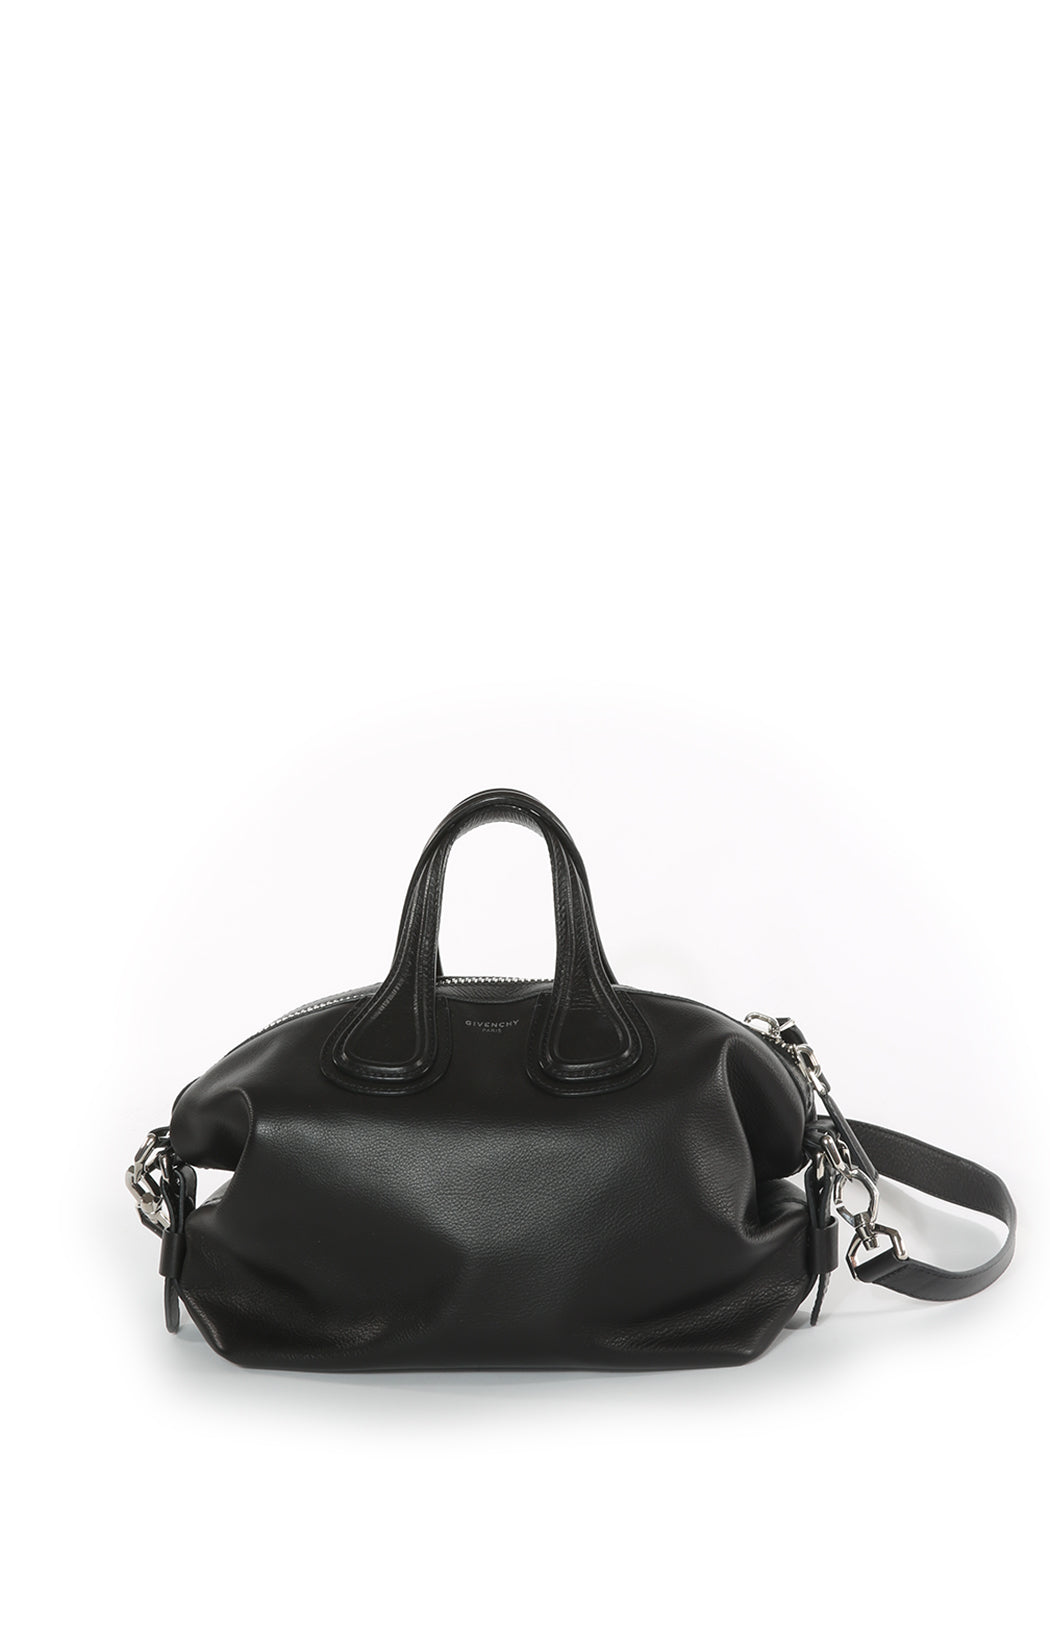 Front view of GIVENCHY  Handbag Size: 13 in x 9 in x 7 in